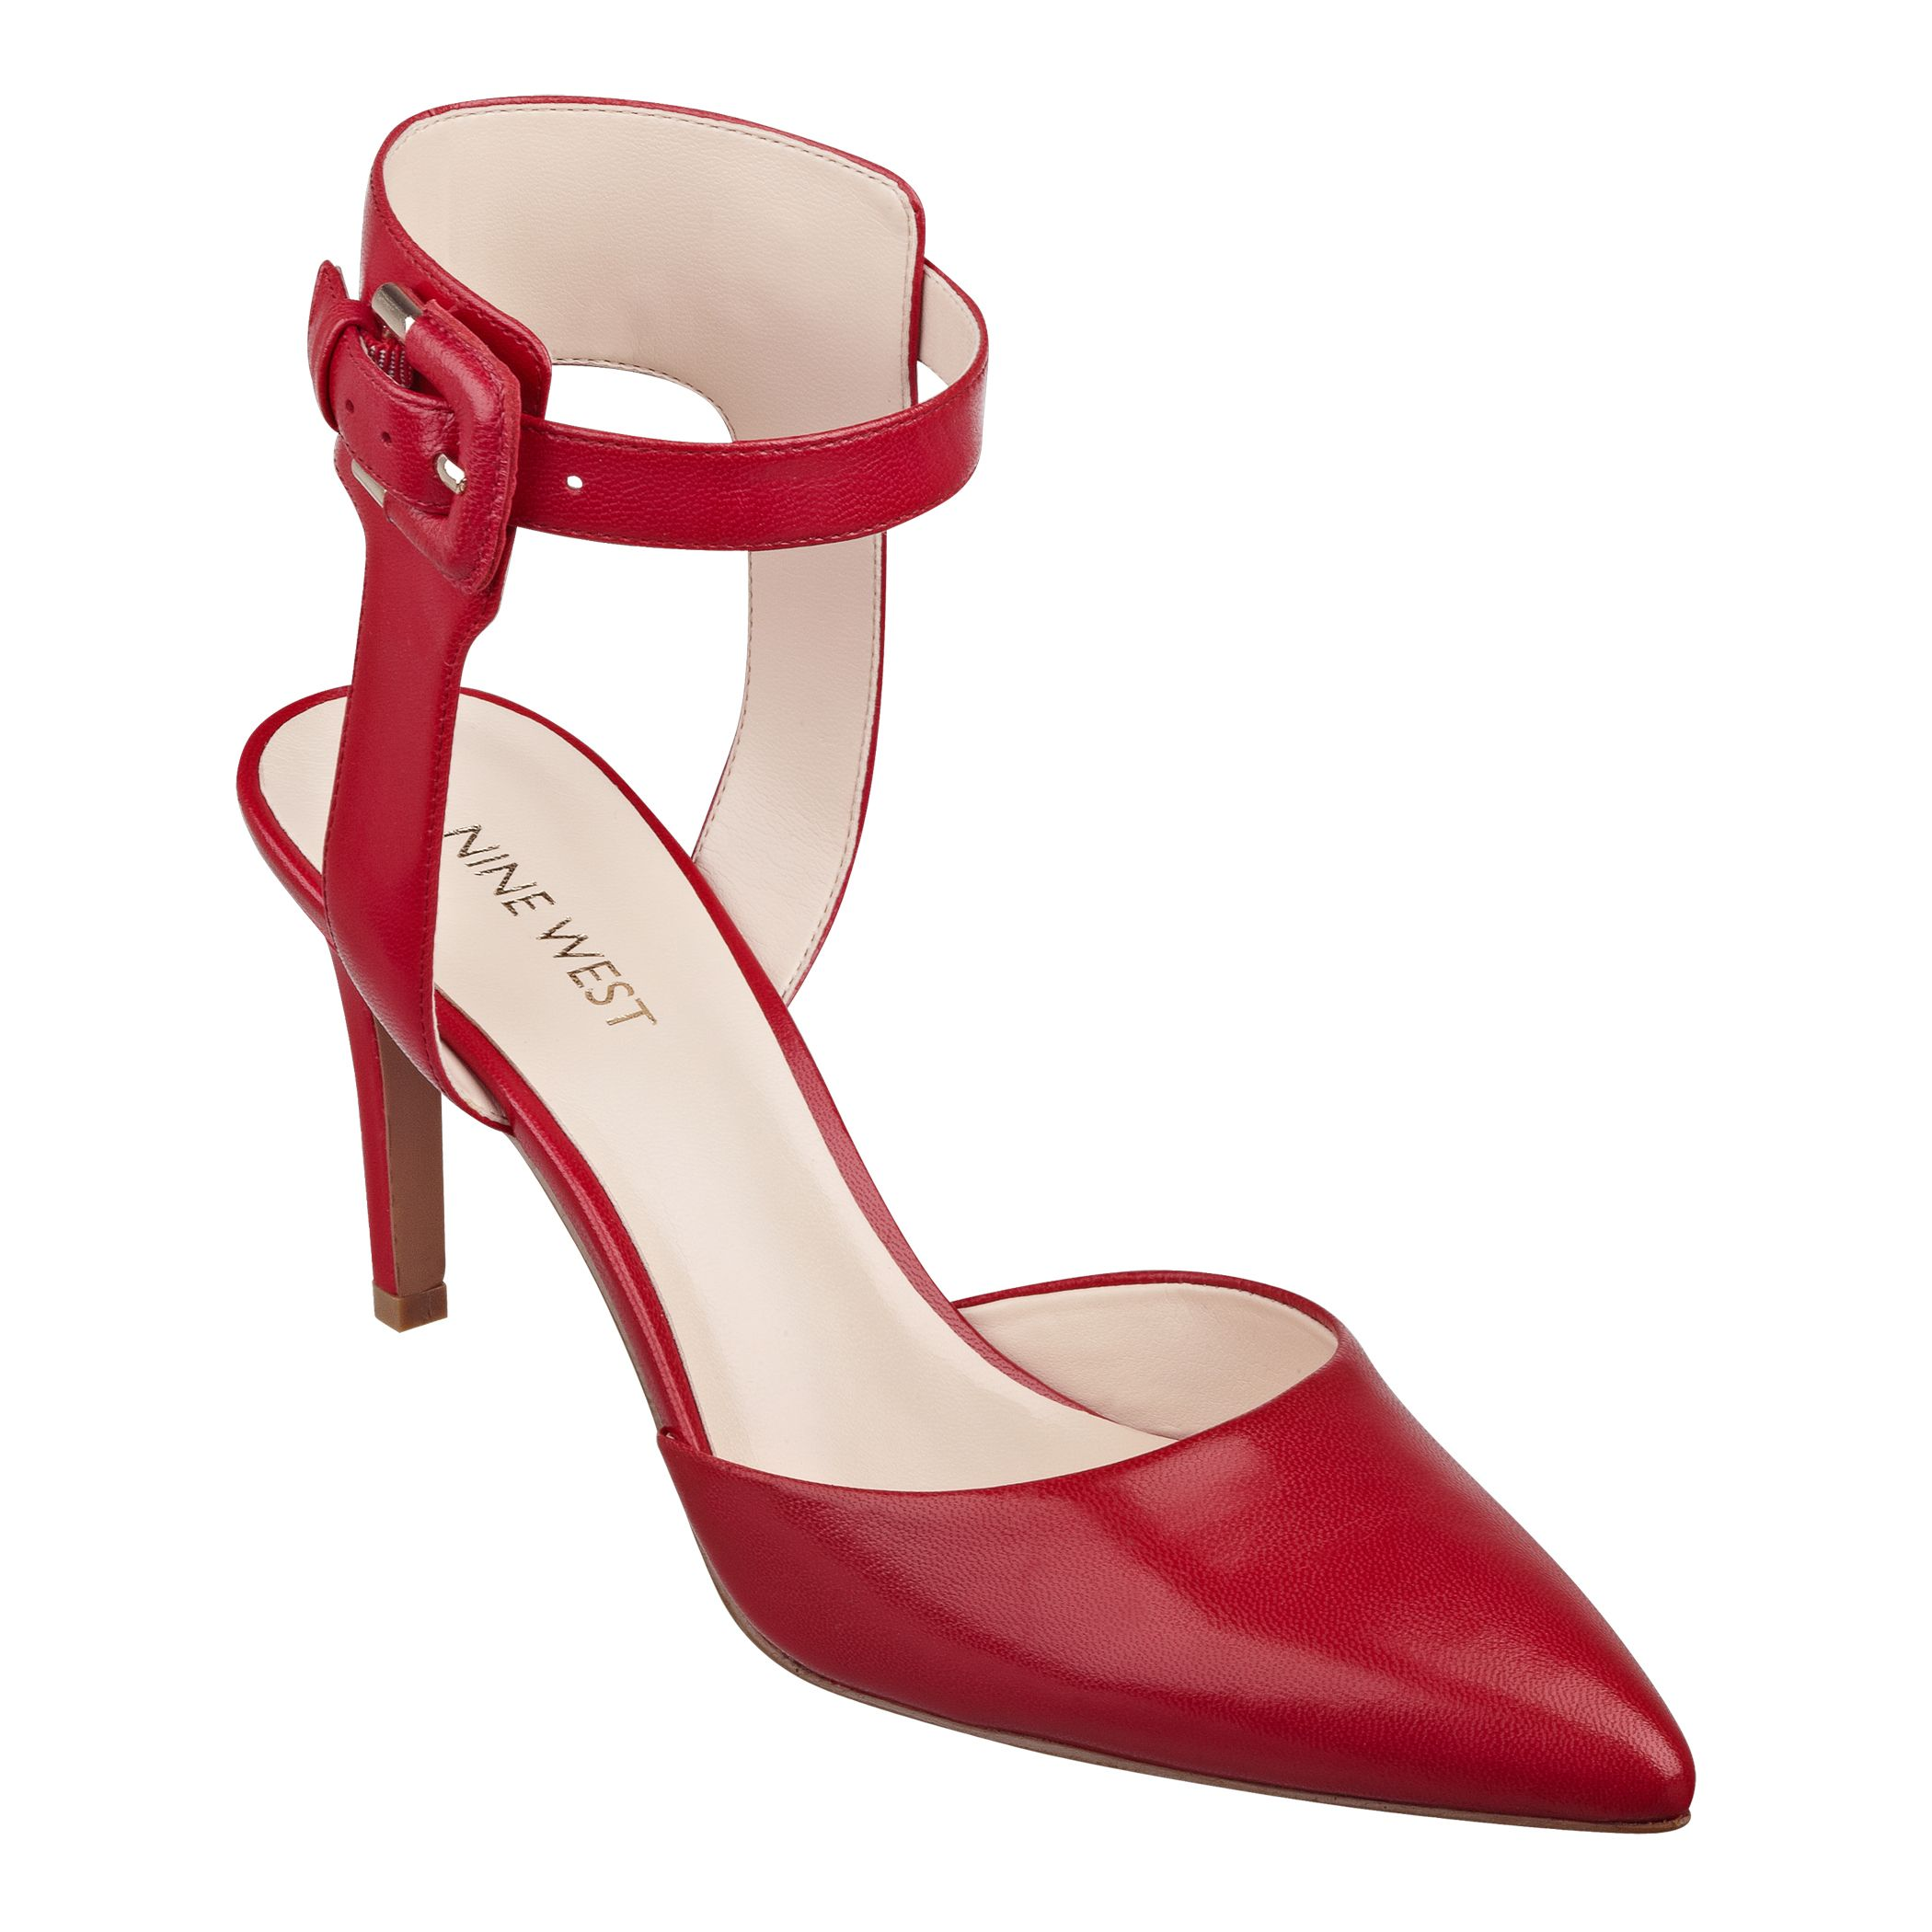 Red Color Party wear Nine west latest-fashion of stiletto heels collection for women